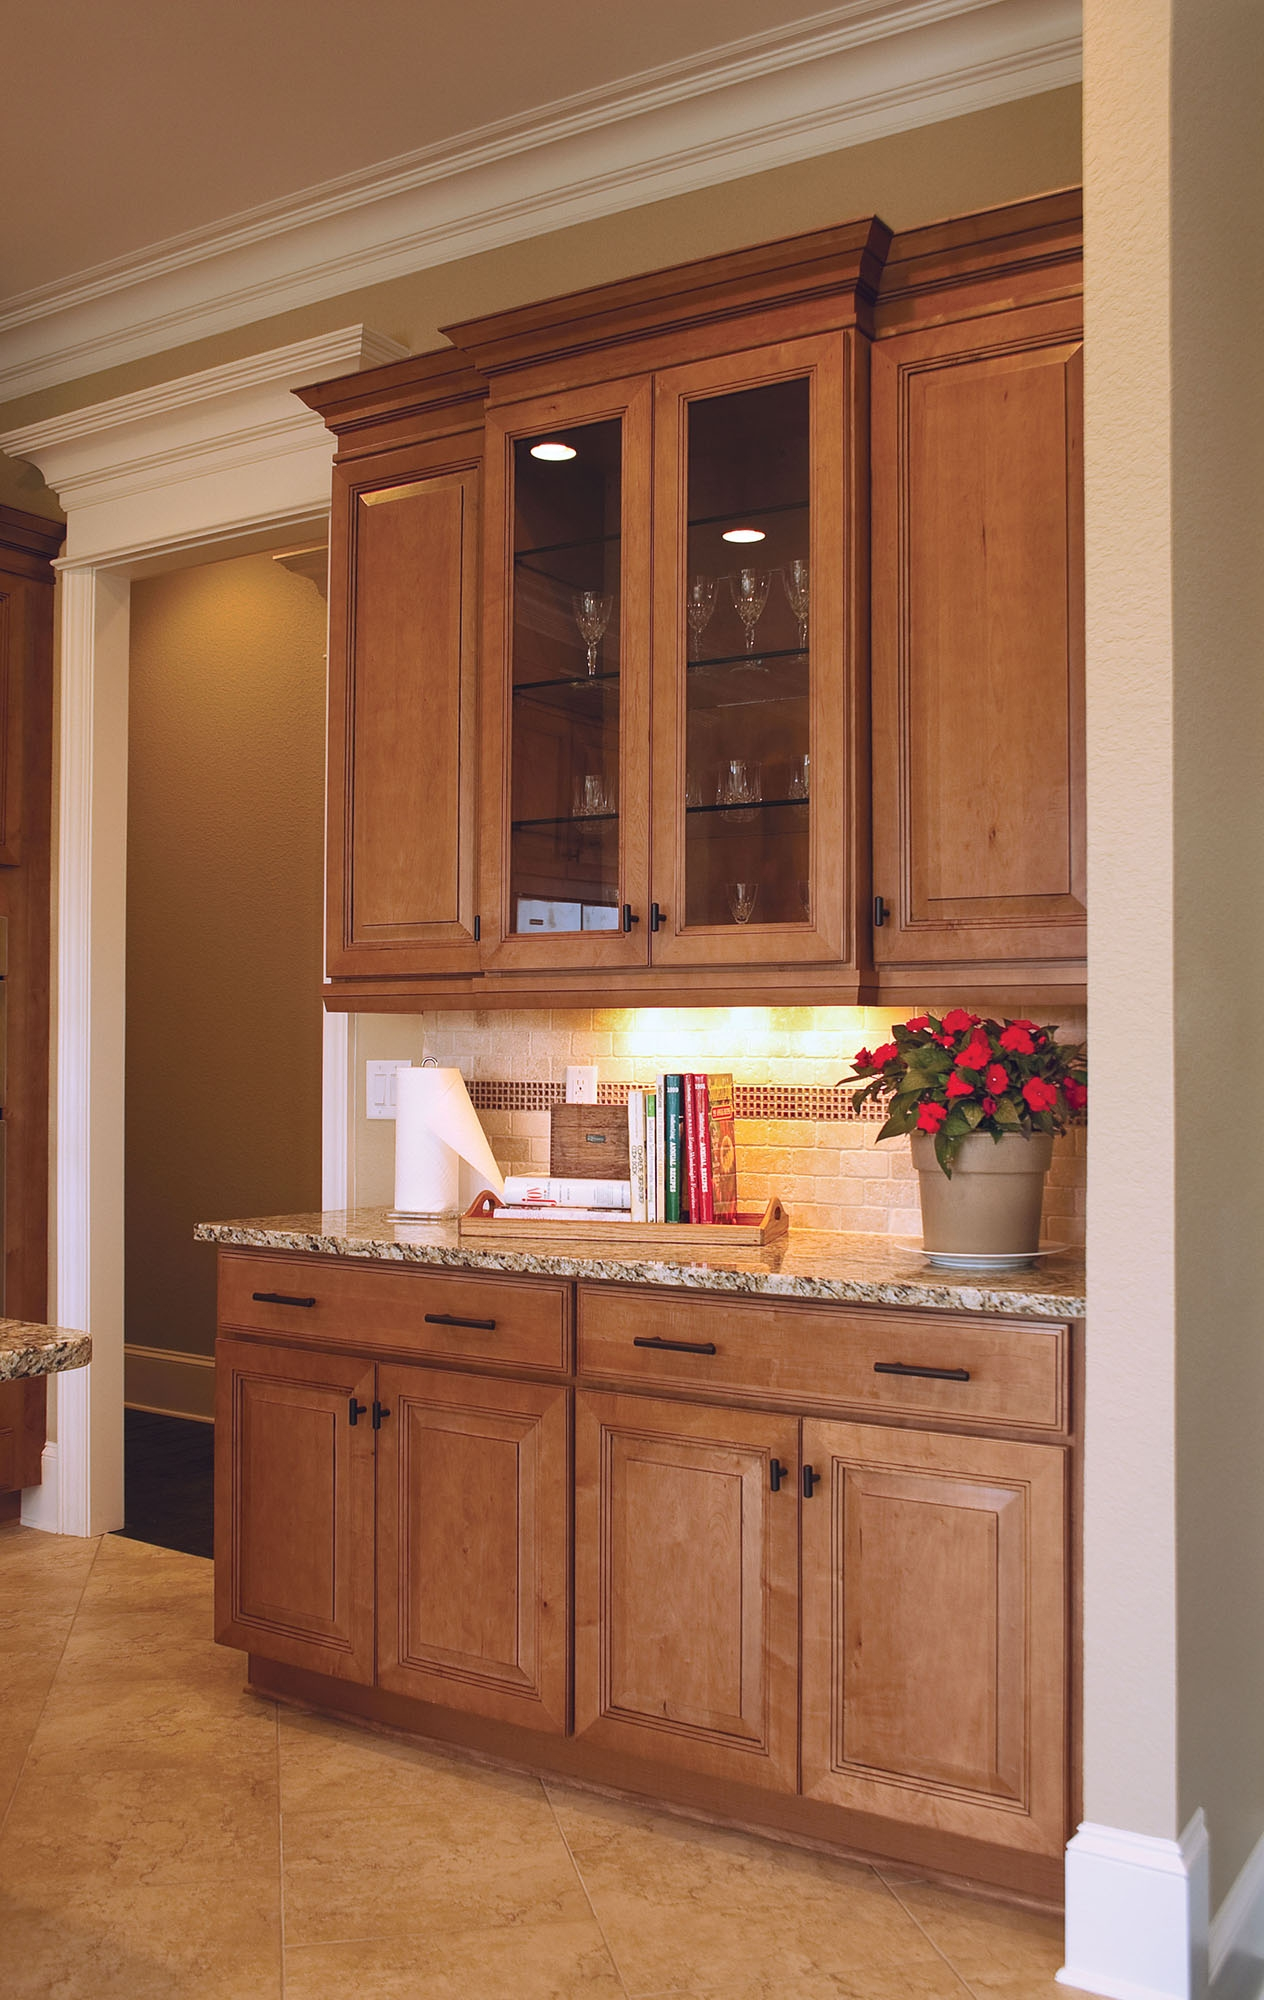 Kitchen Cabinets With Glass Frontsglass kitchen cabinet doors open frame cabinets